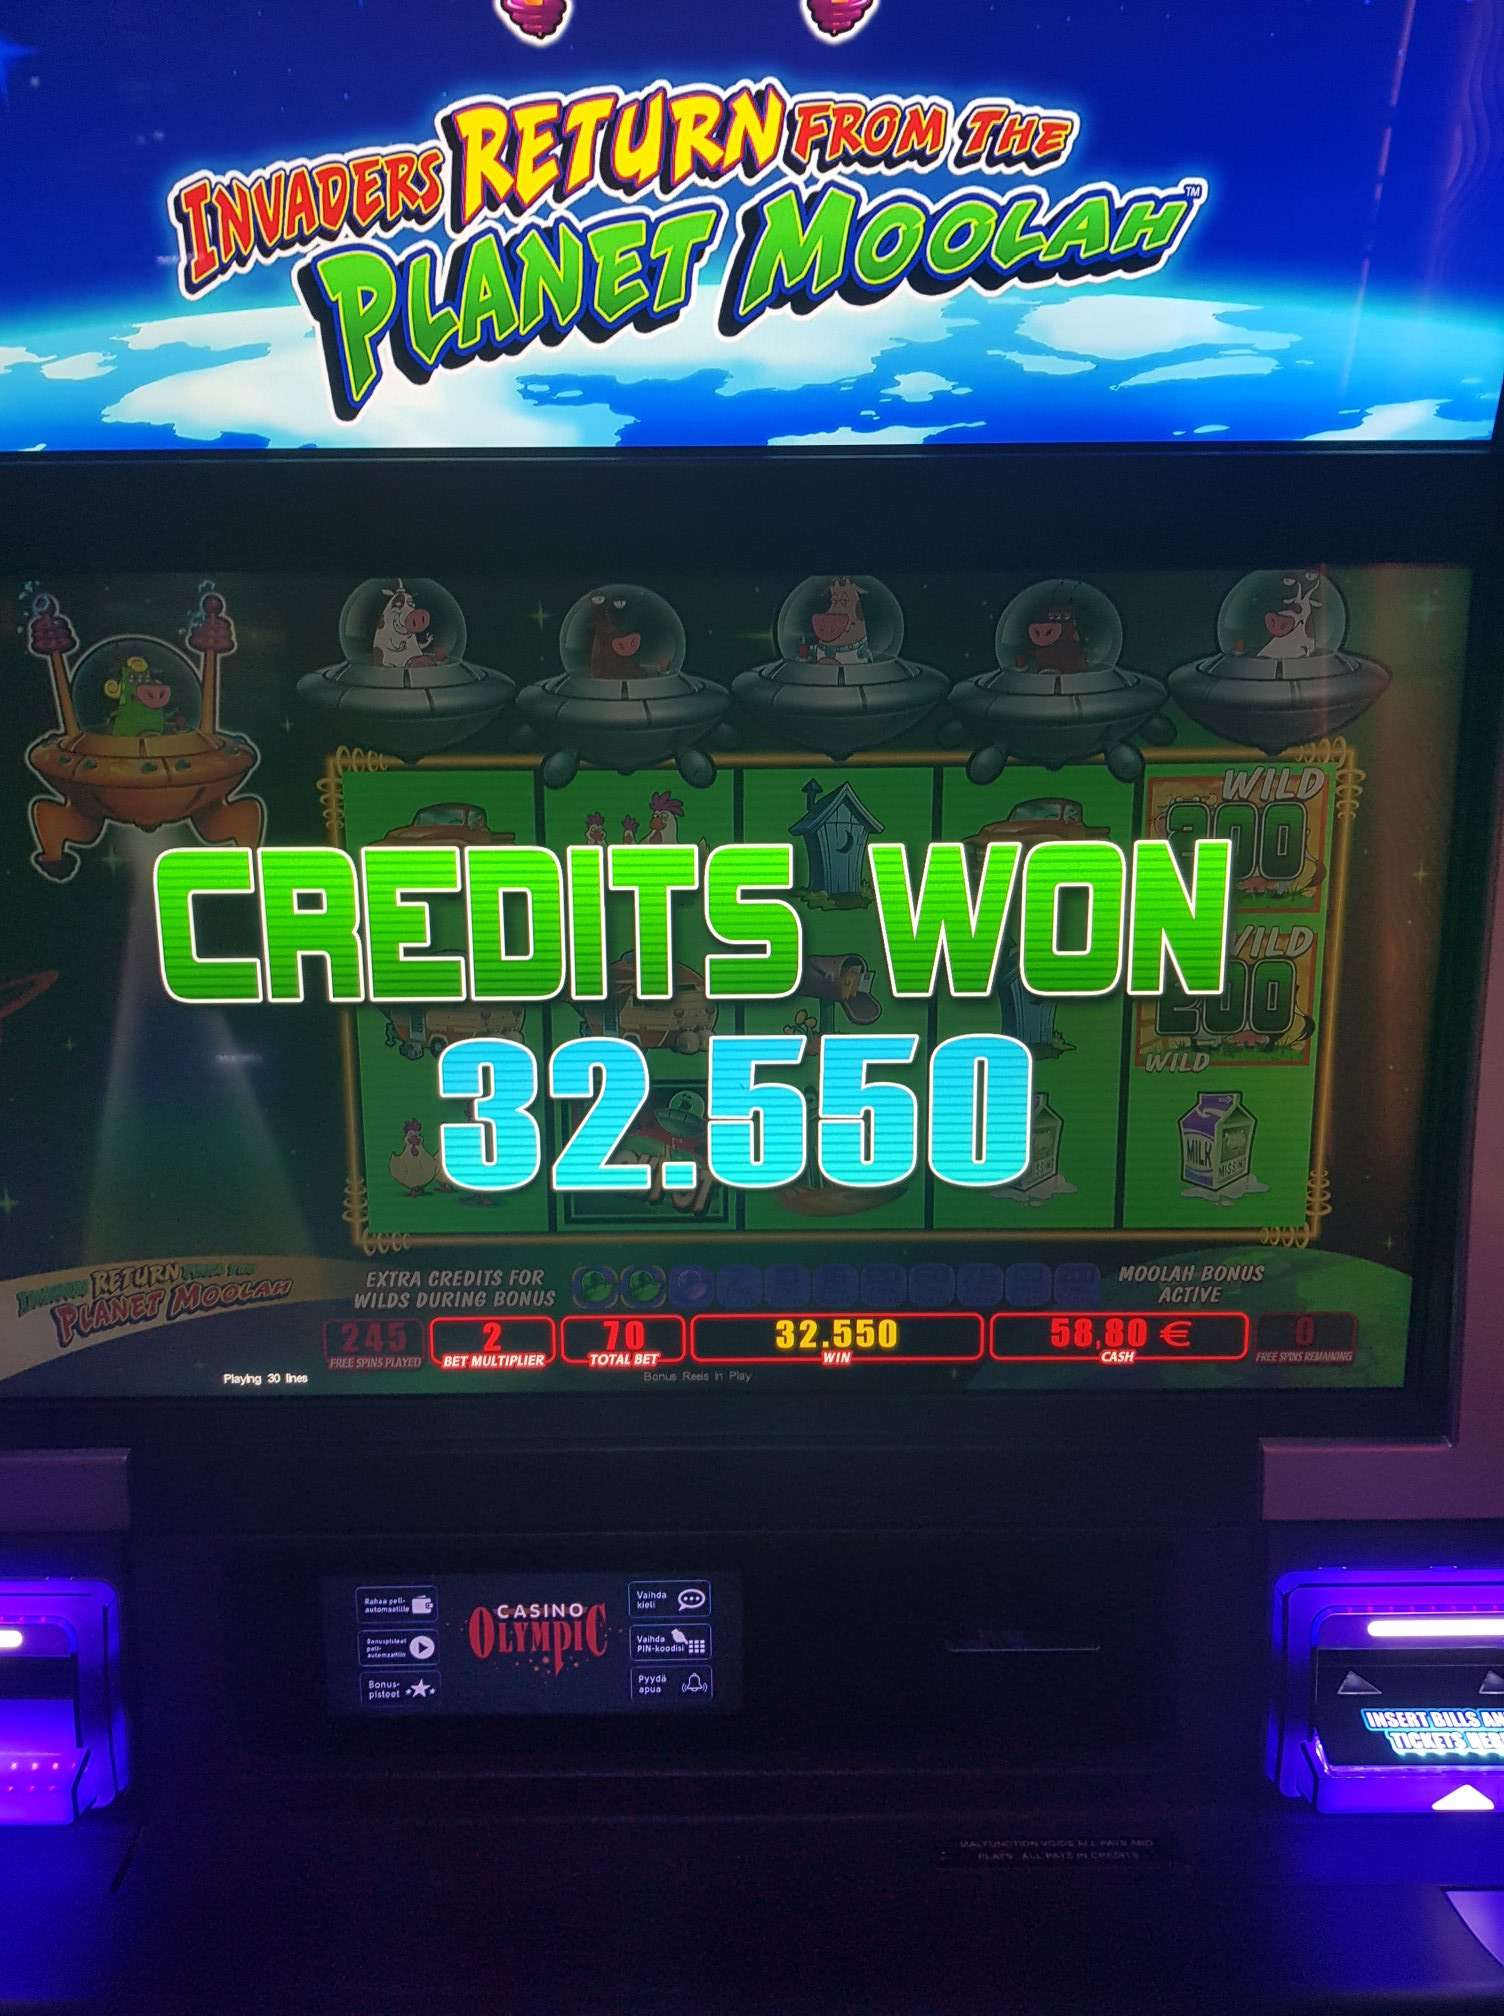 Invaders Return From the Planet Moolah Casino win picture by MrMork 5.6.2020 325.50e 465X Olympic Casino Landbace